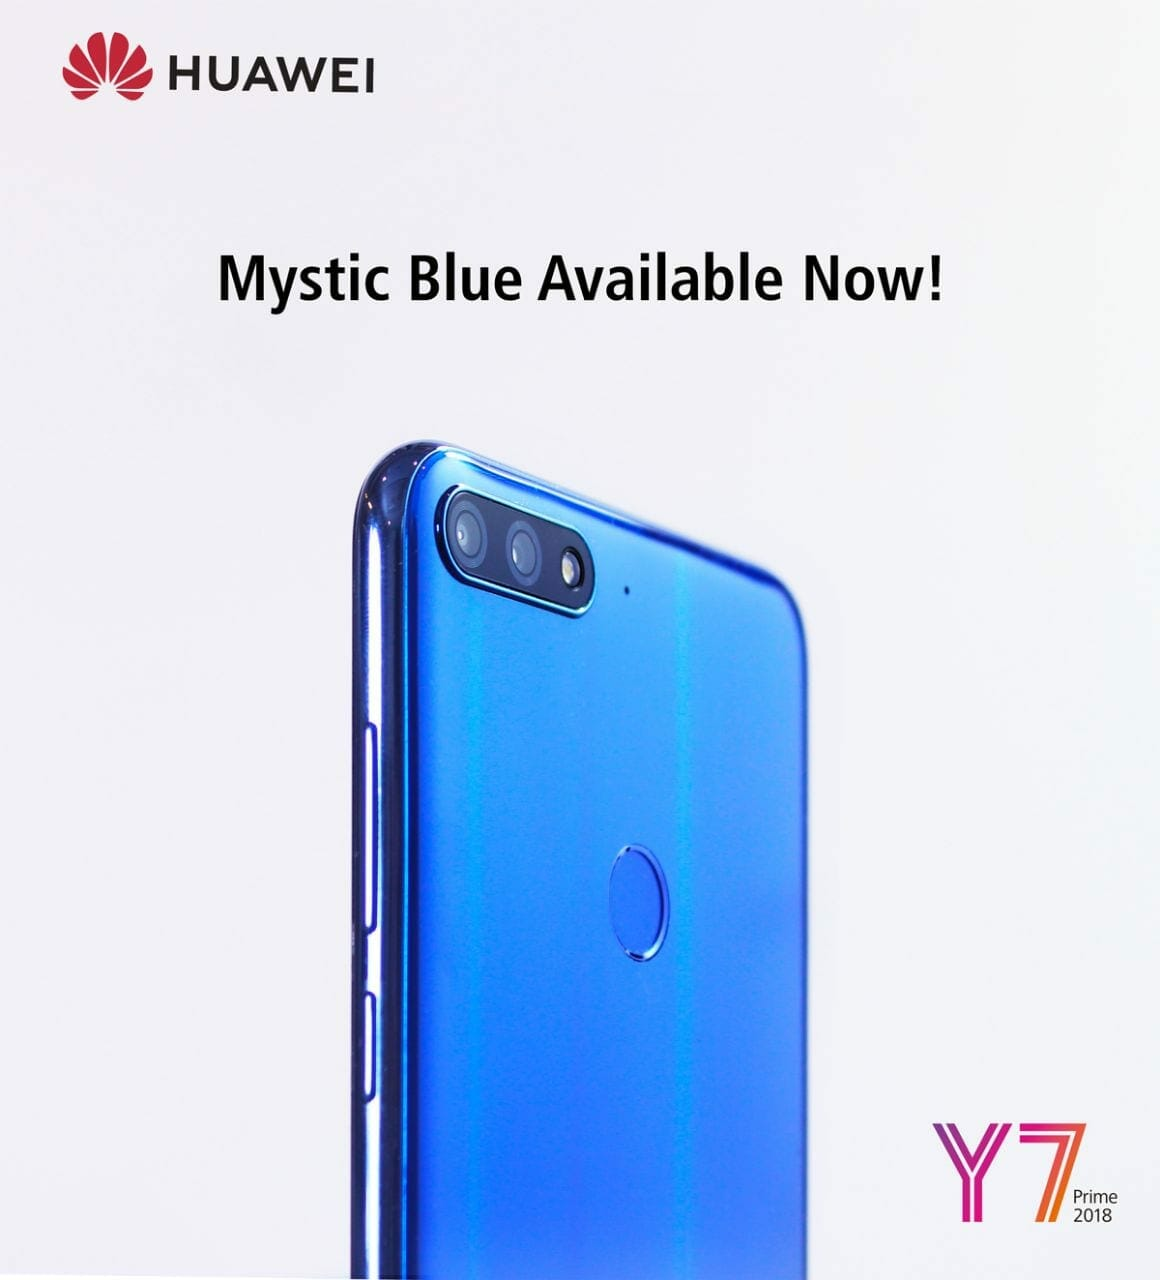 WhatsApp Image 2018 04 12 at 9.00.02 PM - HUAWEI Y7 Prime 2018 Is Available in Mystic Blue To Make Your Phone Stand Out!